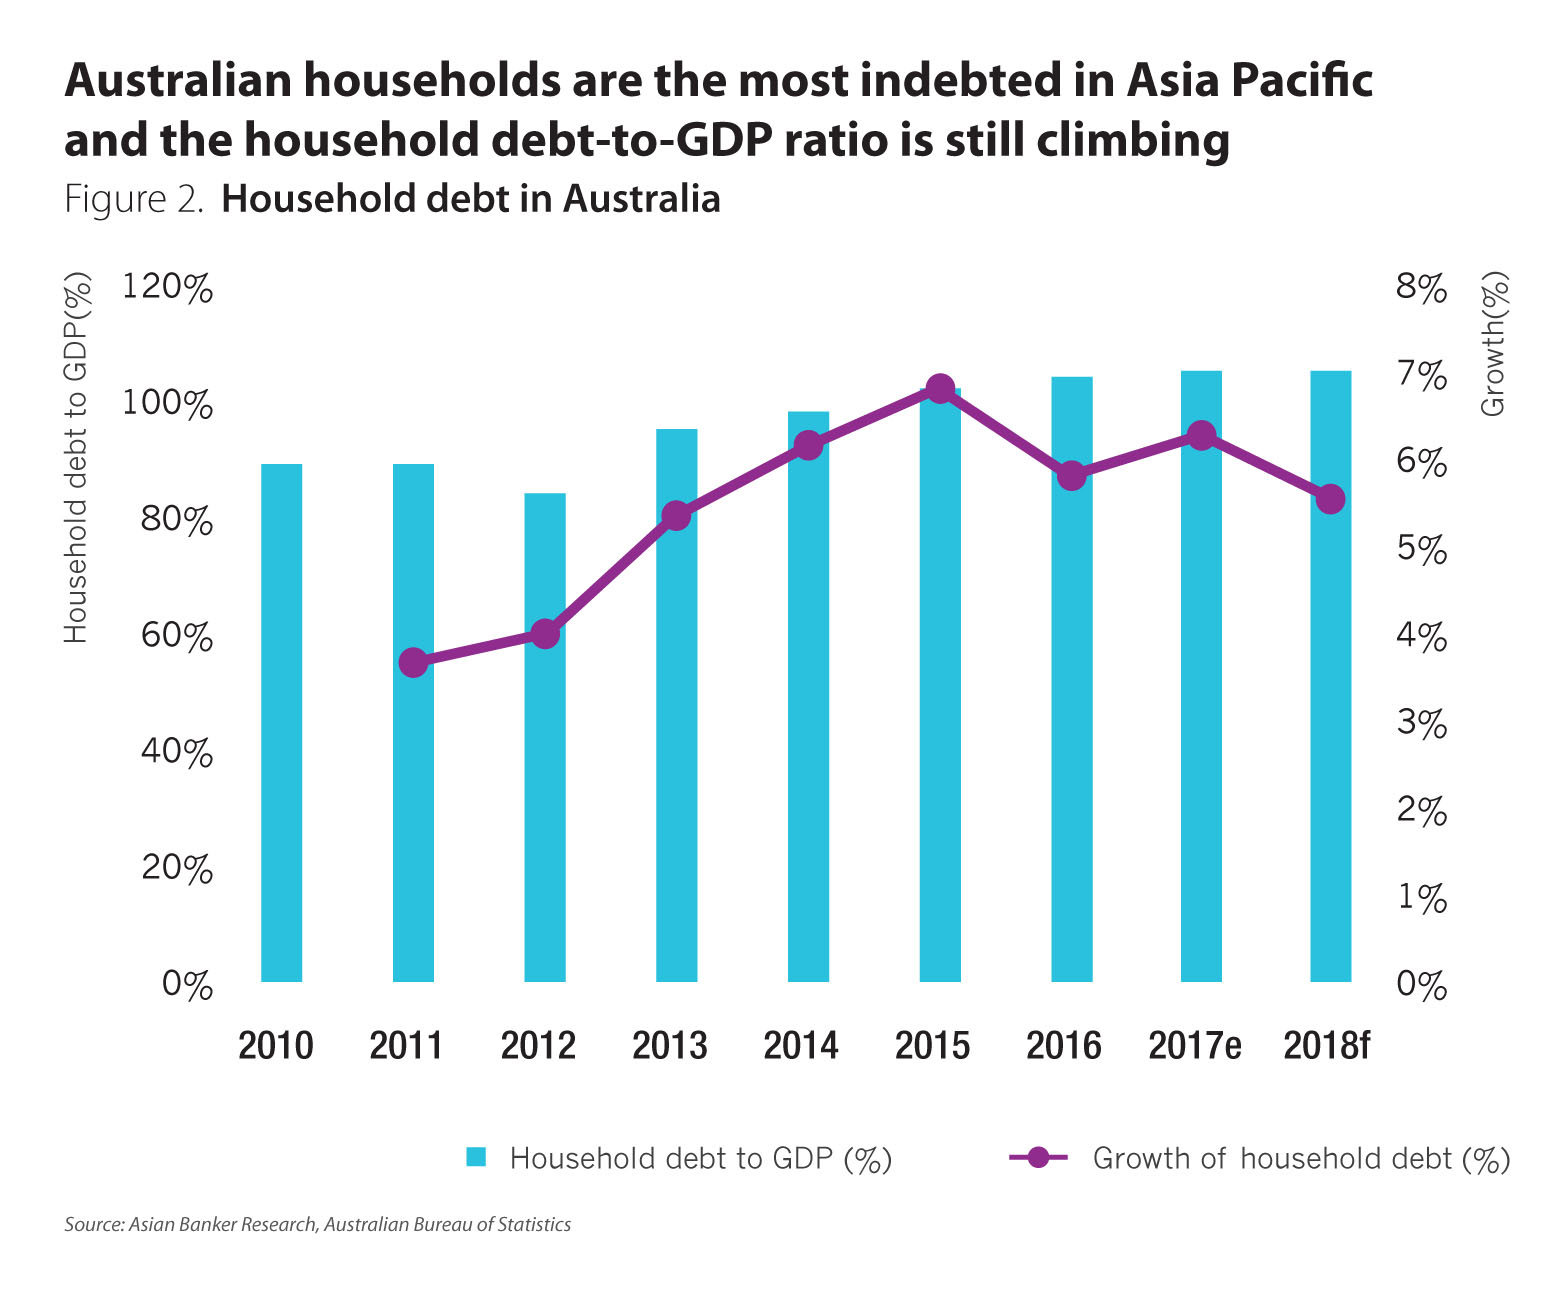 Heavy household debt burden poses risks in some Asia Pacific